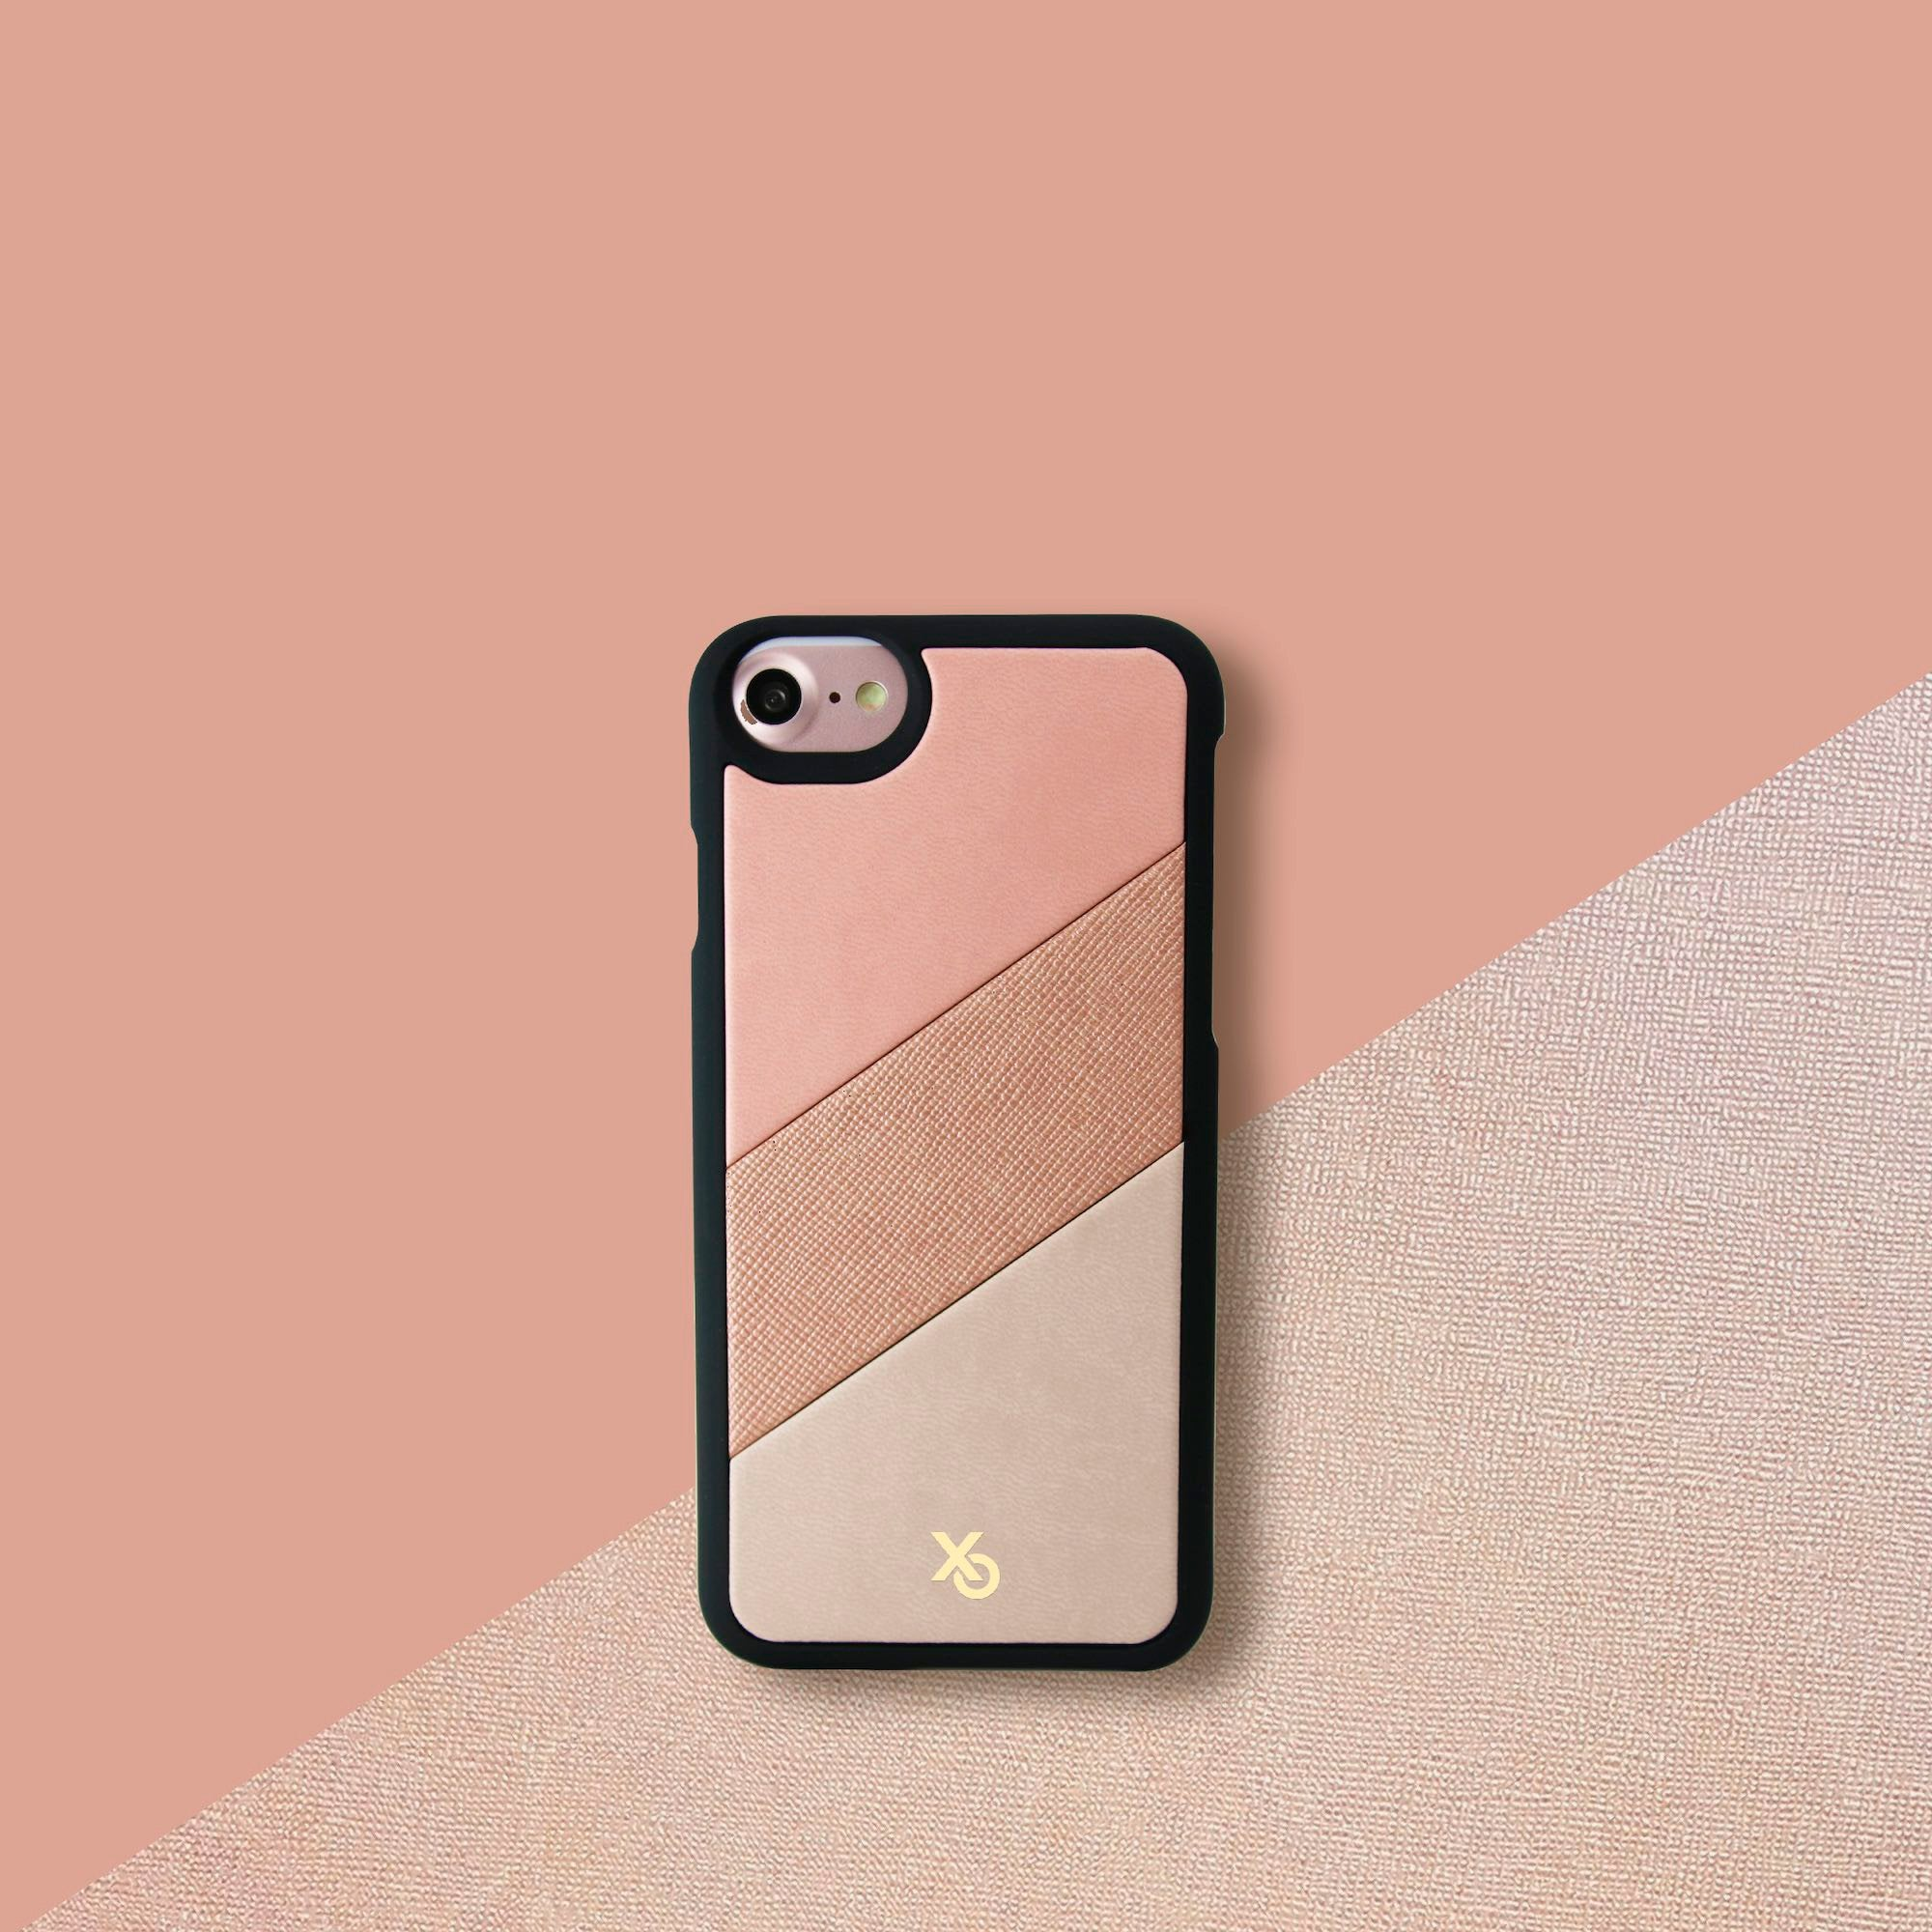 LaFab Enamor Triptych Designer Collection Back Case Made in Paris for iPhone SE 2020 Edition in Beverlyhills